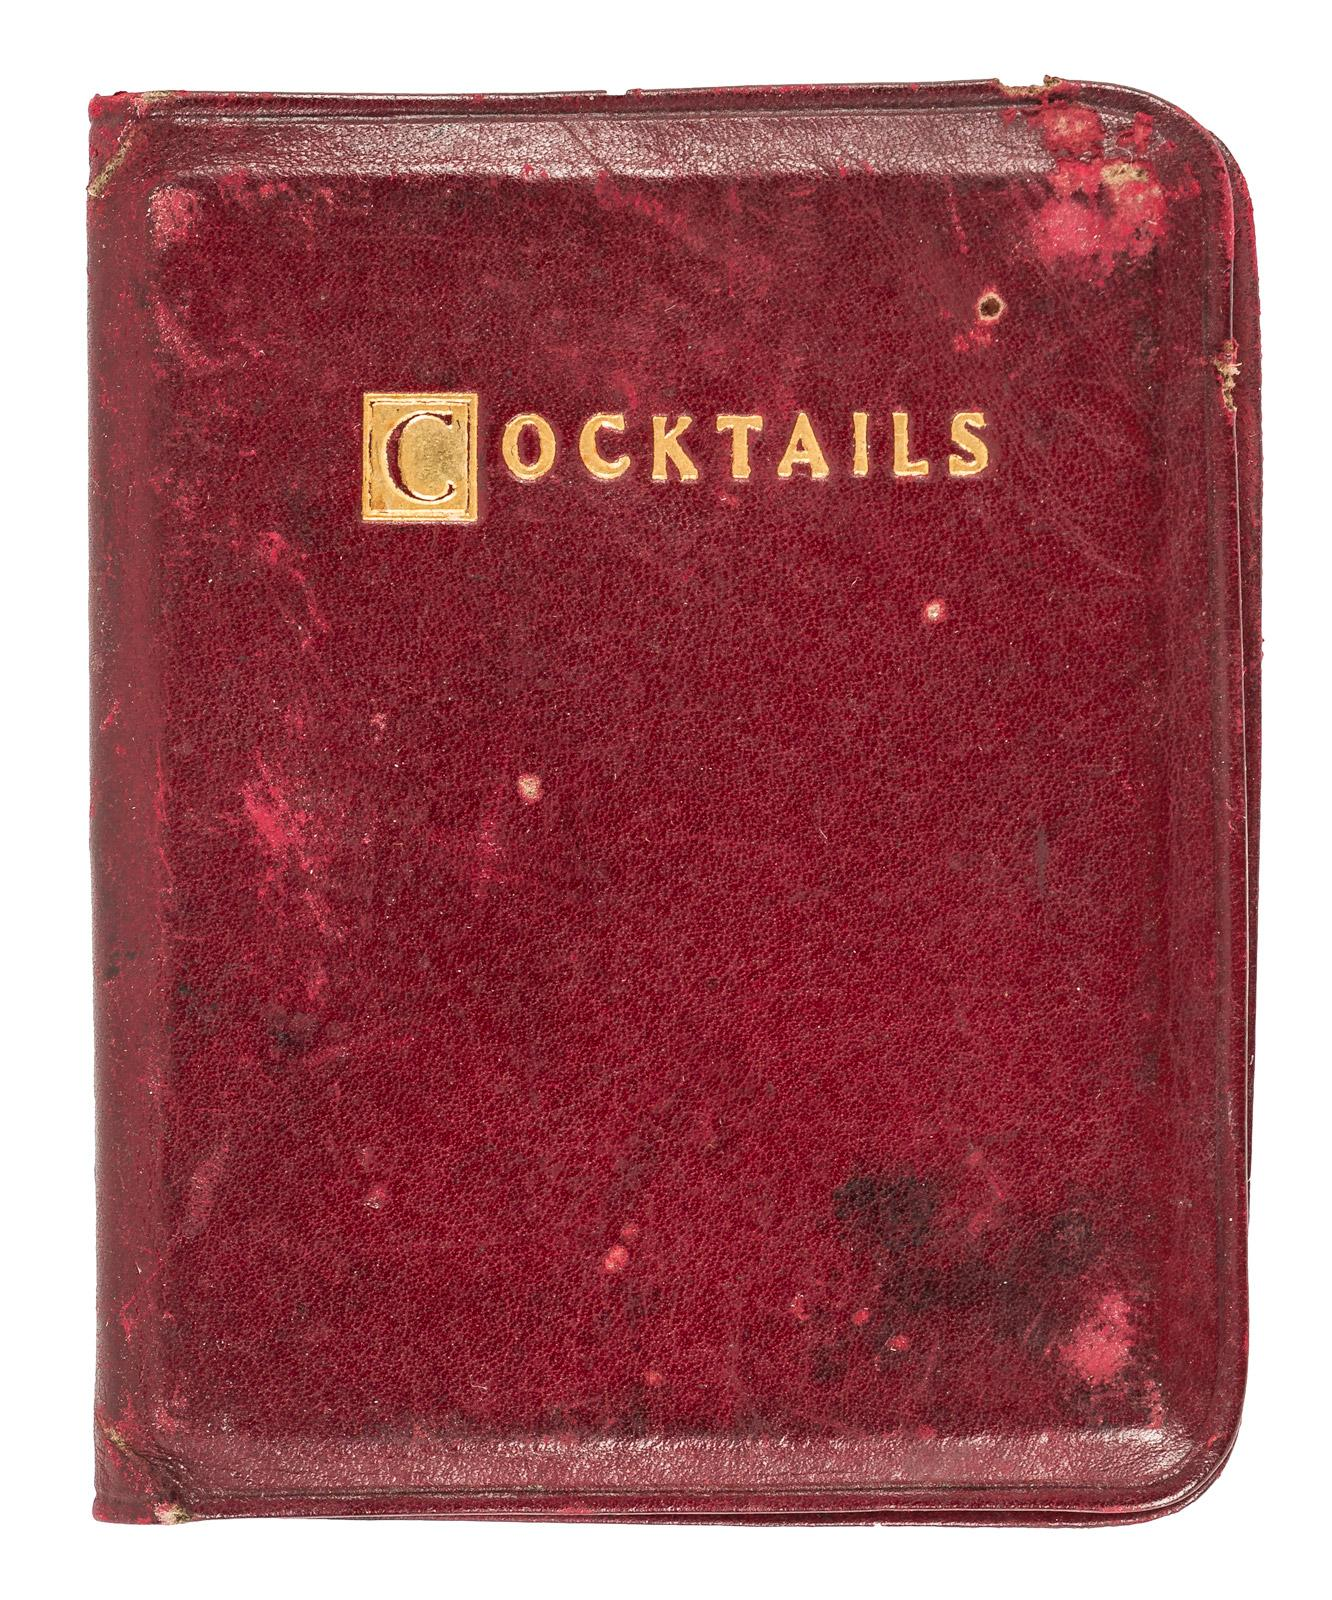 The Tiny Book on Cocktails - Price Estimate: $400 - $600